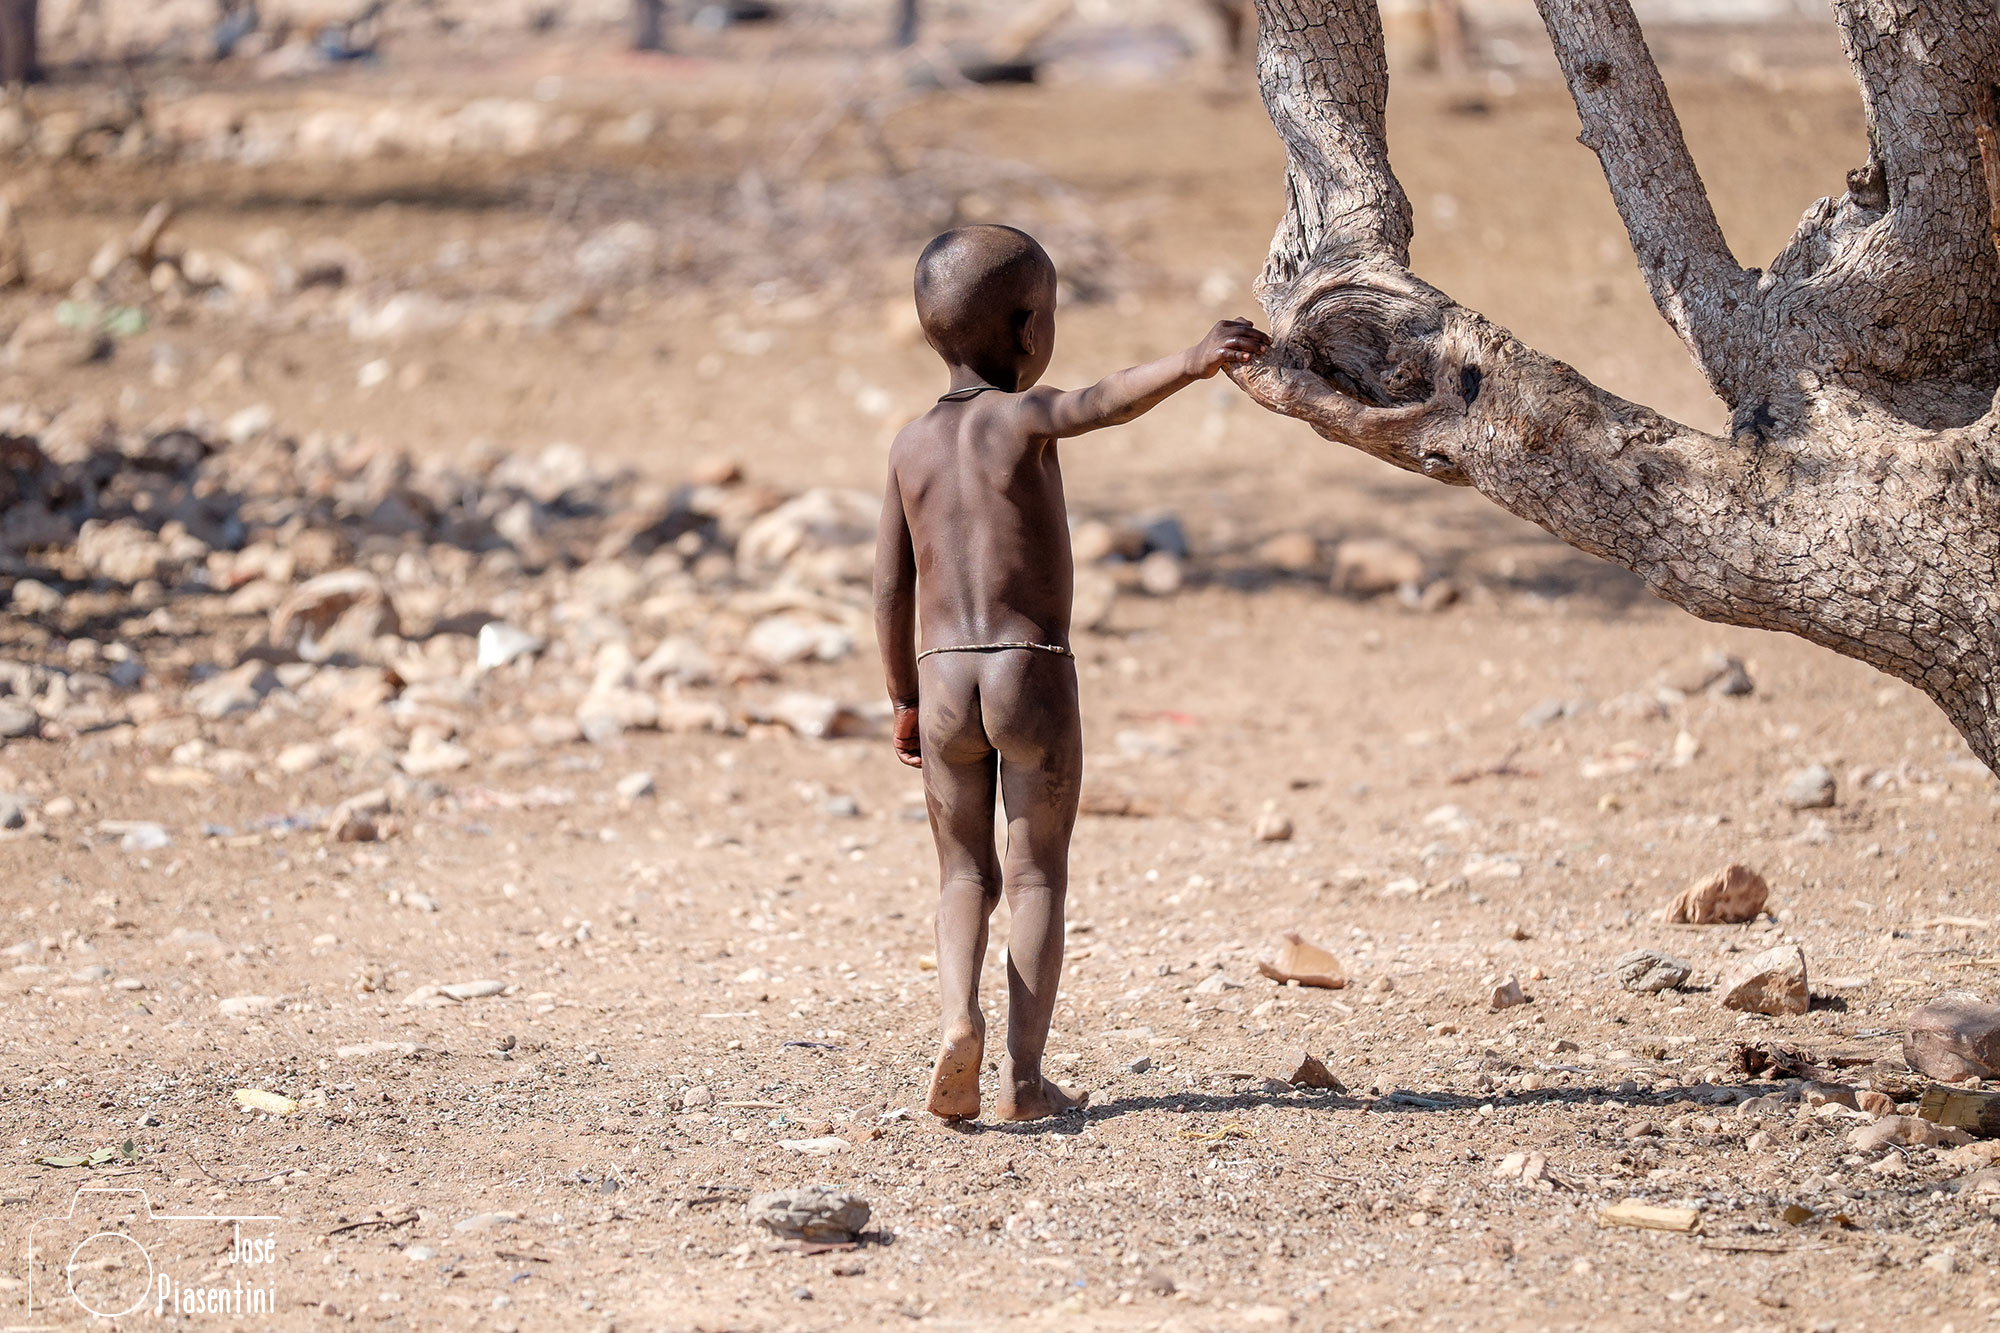 Himba child Namibia